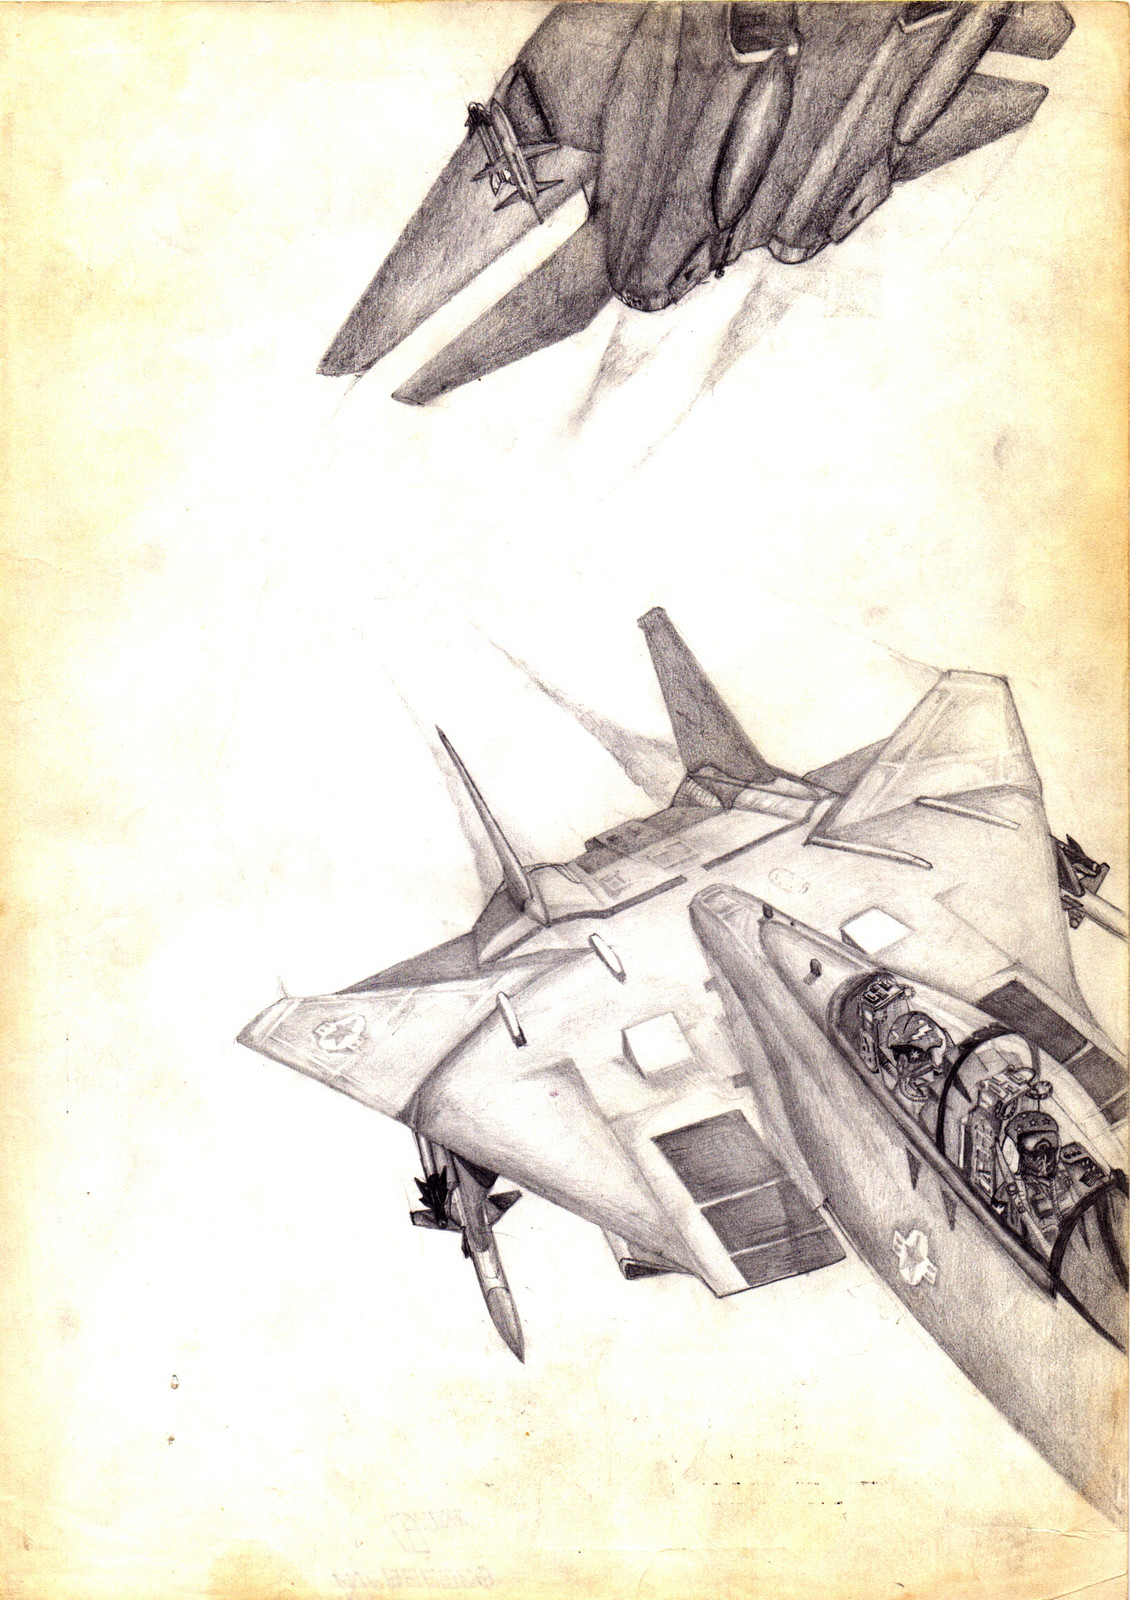 A couple of Tomcats I drew on A4 paper using graphite technical 0.5 Rotring pencil. Shit, I had nerves of steel back in 6th grade!